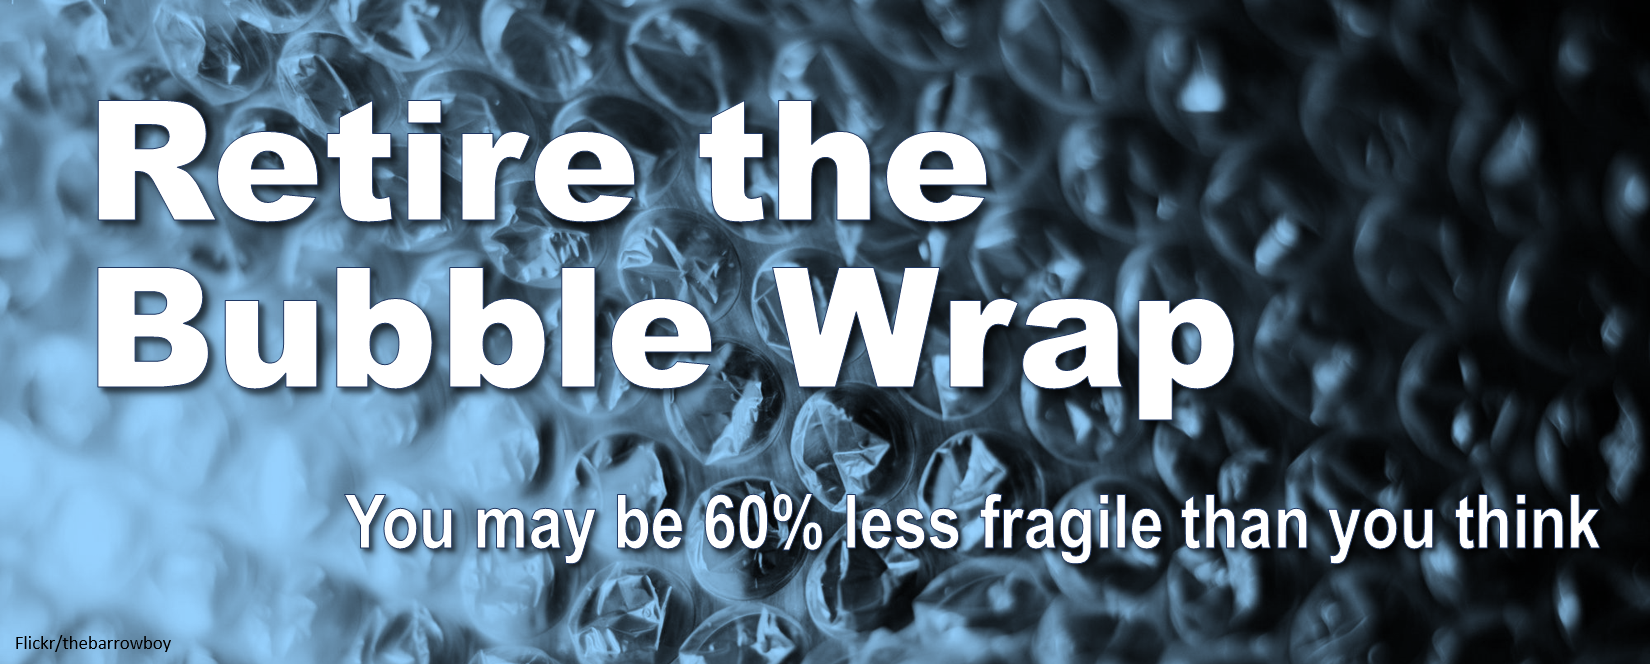 Retire the bubble wrap - resilience.png